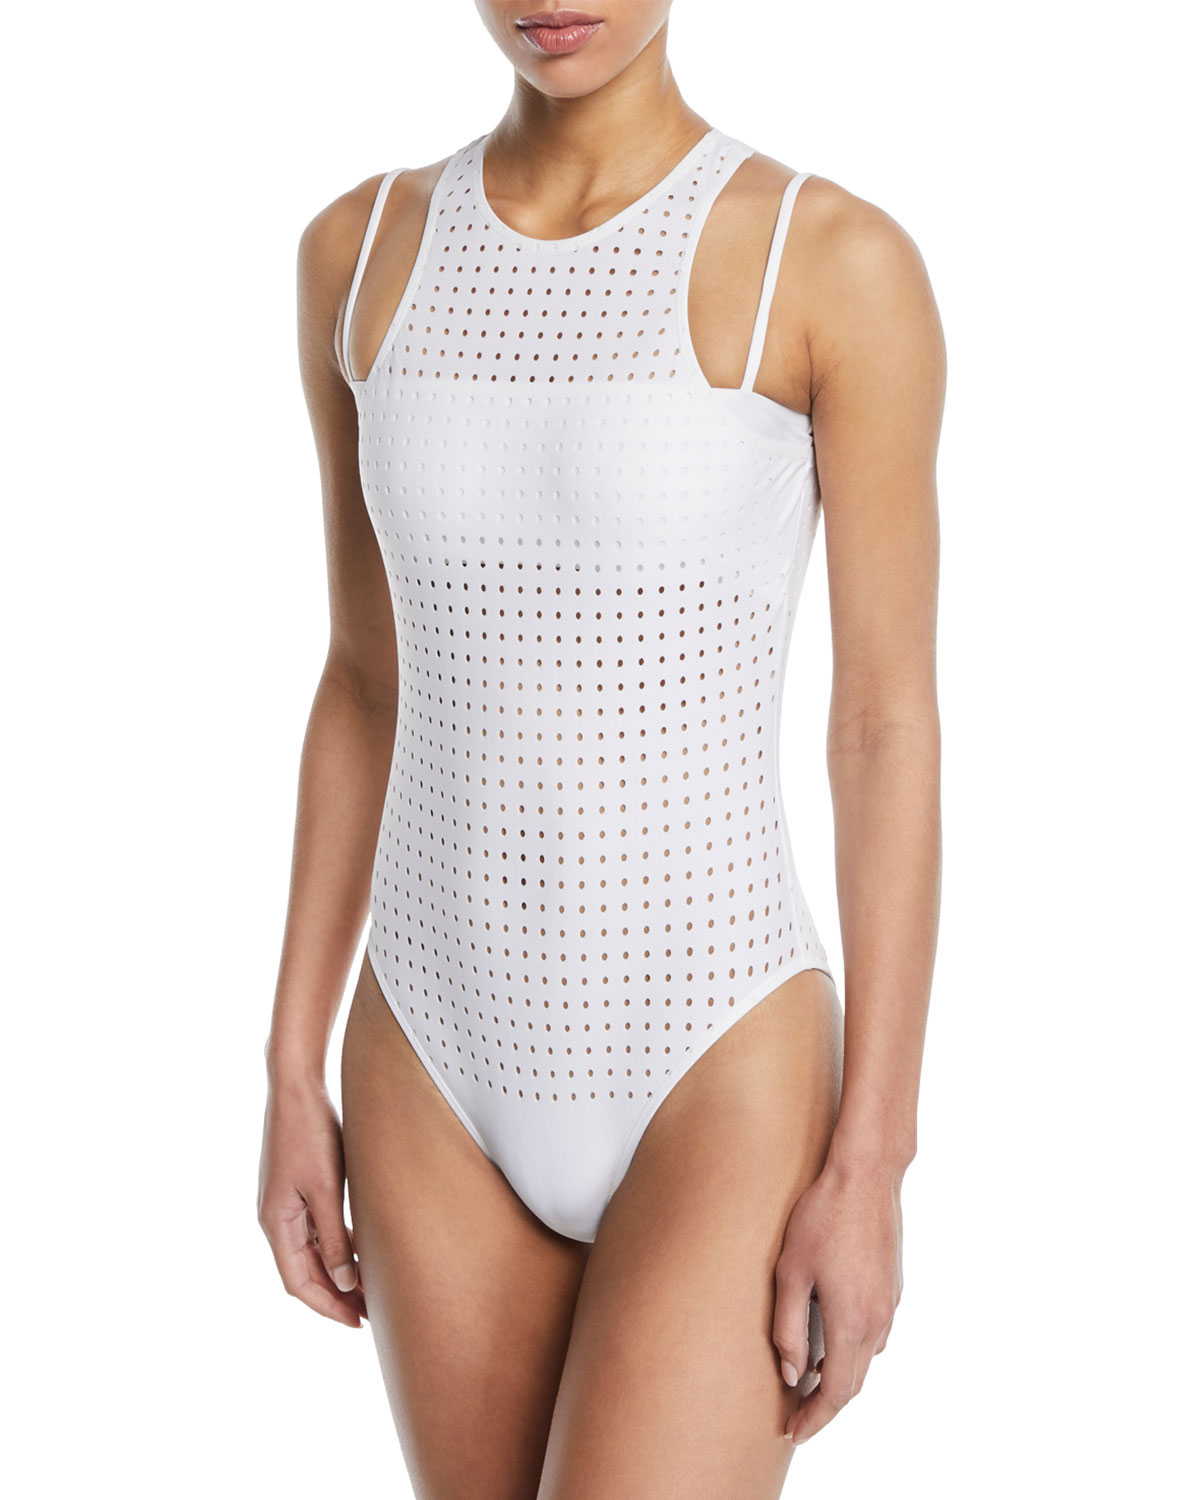 Violette Perforated One-Piece Swimsuit